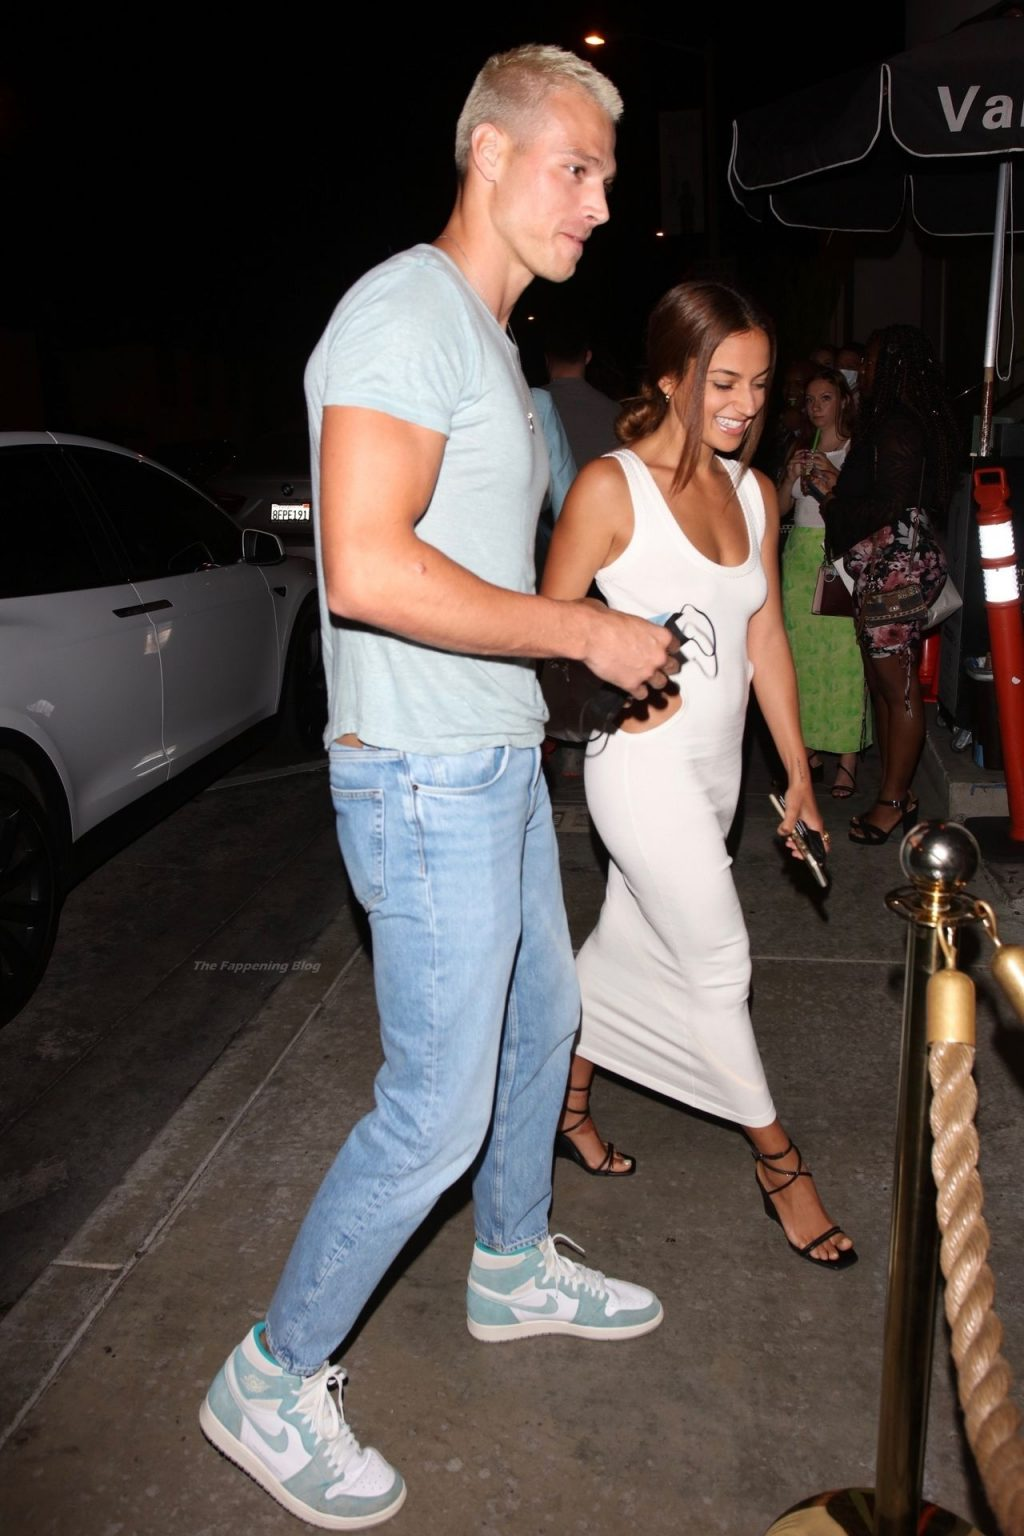 Inanna Sarkis & Matthew Noszka Arrive at Dinner Date at Catch in WeHo (14 Photos)